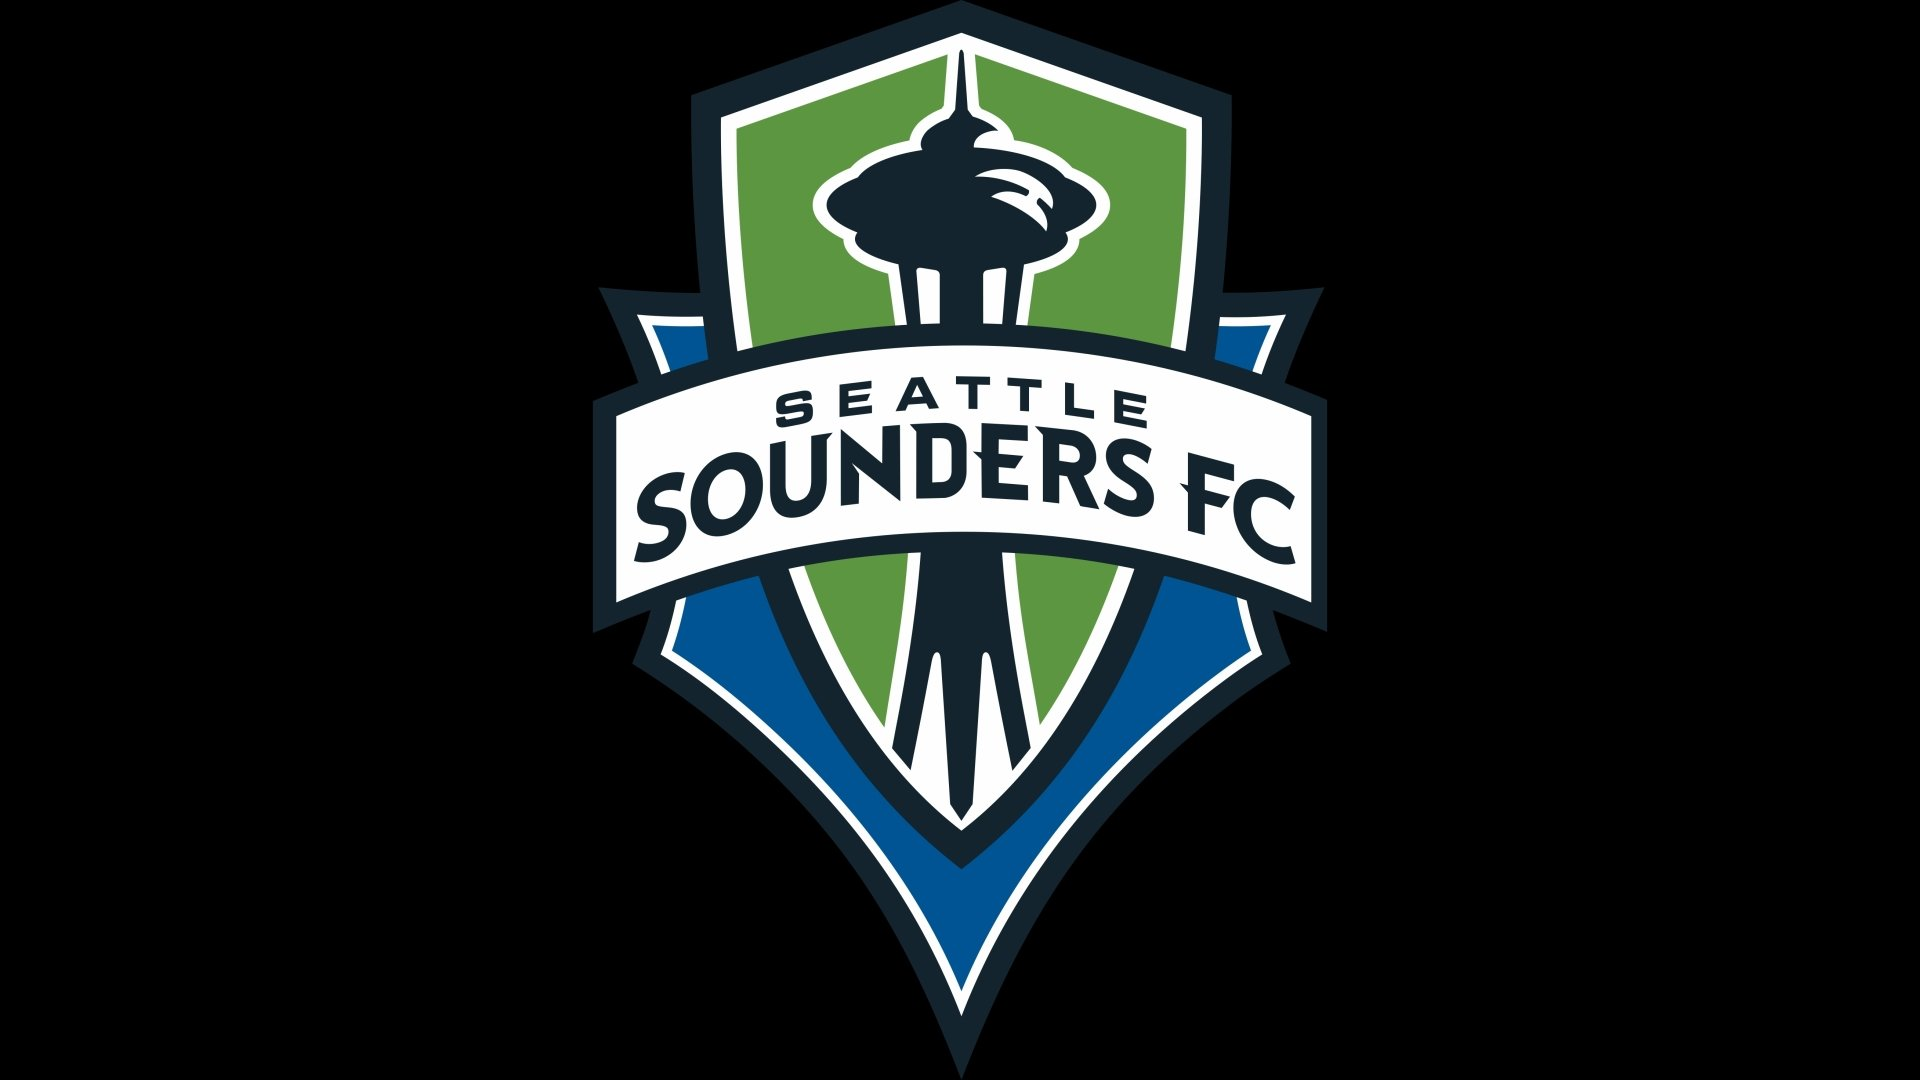 19 Seattle Sounders Fc Hd Wallpapers Background Images Wallpaper Abyss